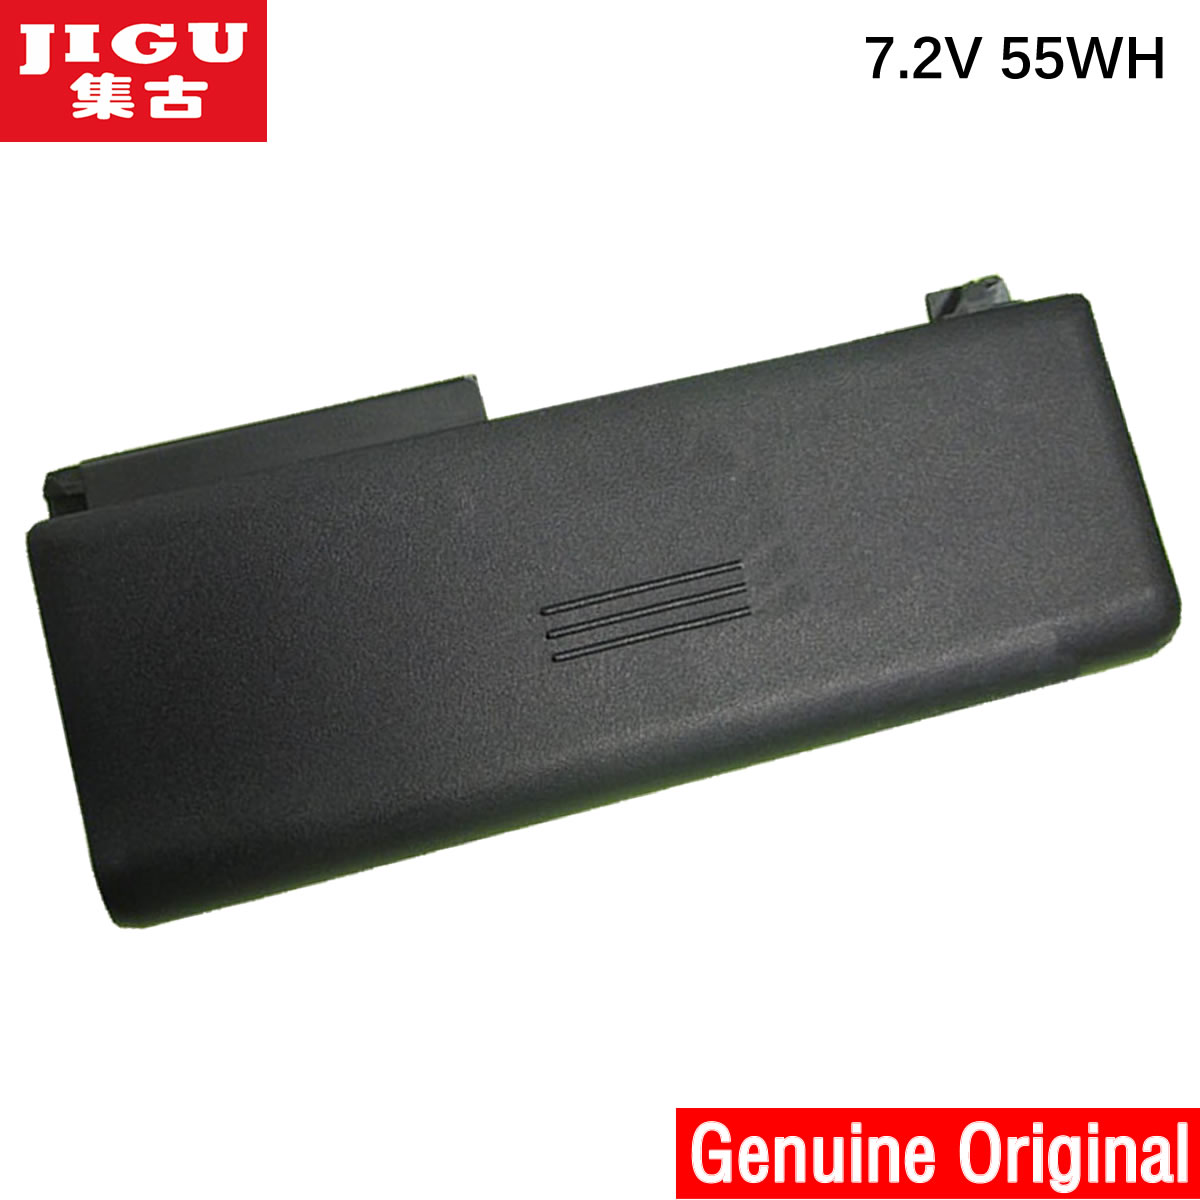 JIGU Original Laptop Battery For Hp Pavilion Tx1000 Tx1000Z Tx1100 Tx1101AU <font><b>Tx1200</b></font> Tx1201au Tx1300 Tx1301au Tx1400 image